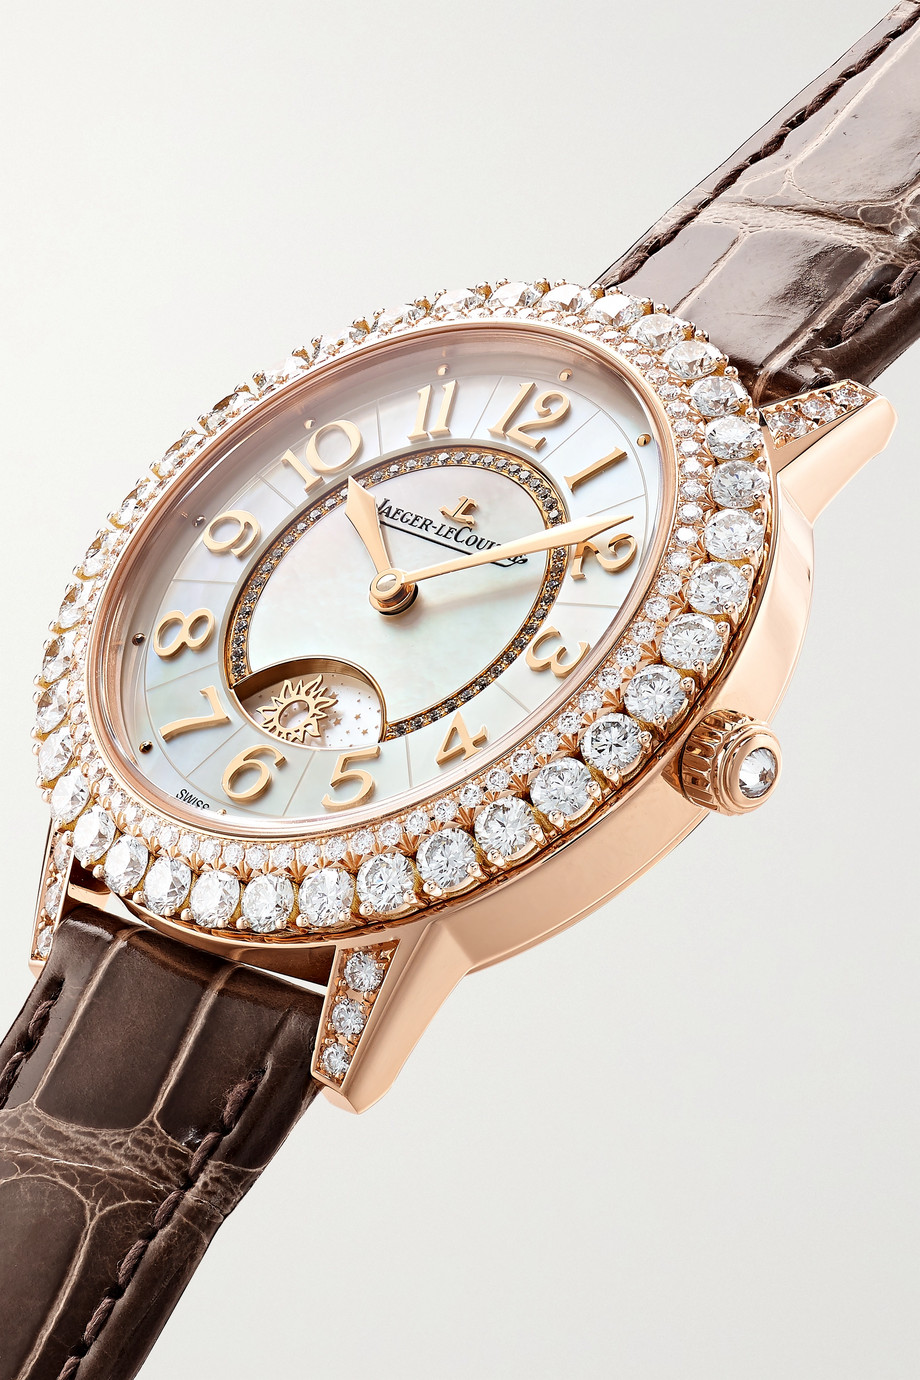 Jaeger-LeCoultre Dazzling Rendez-Vous Night & Day Automatic 36mm rose gold, alligator and diamond watch